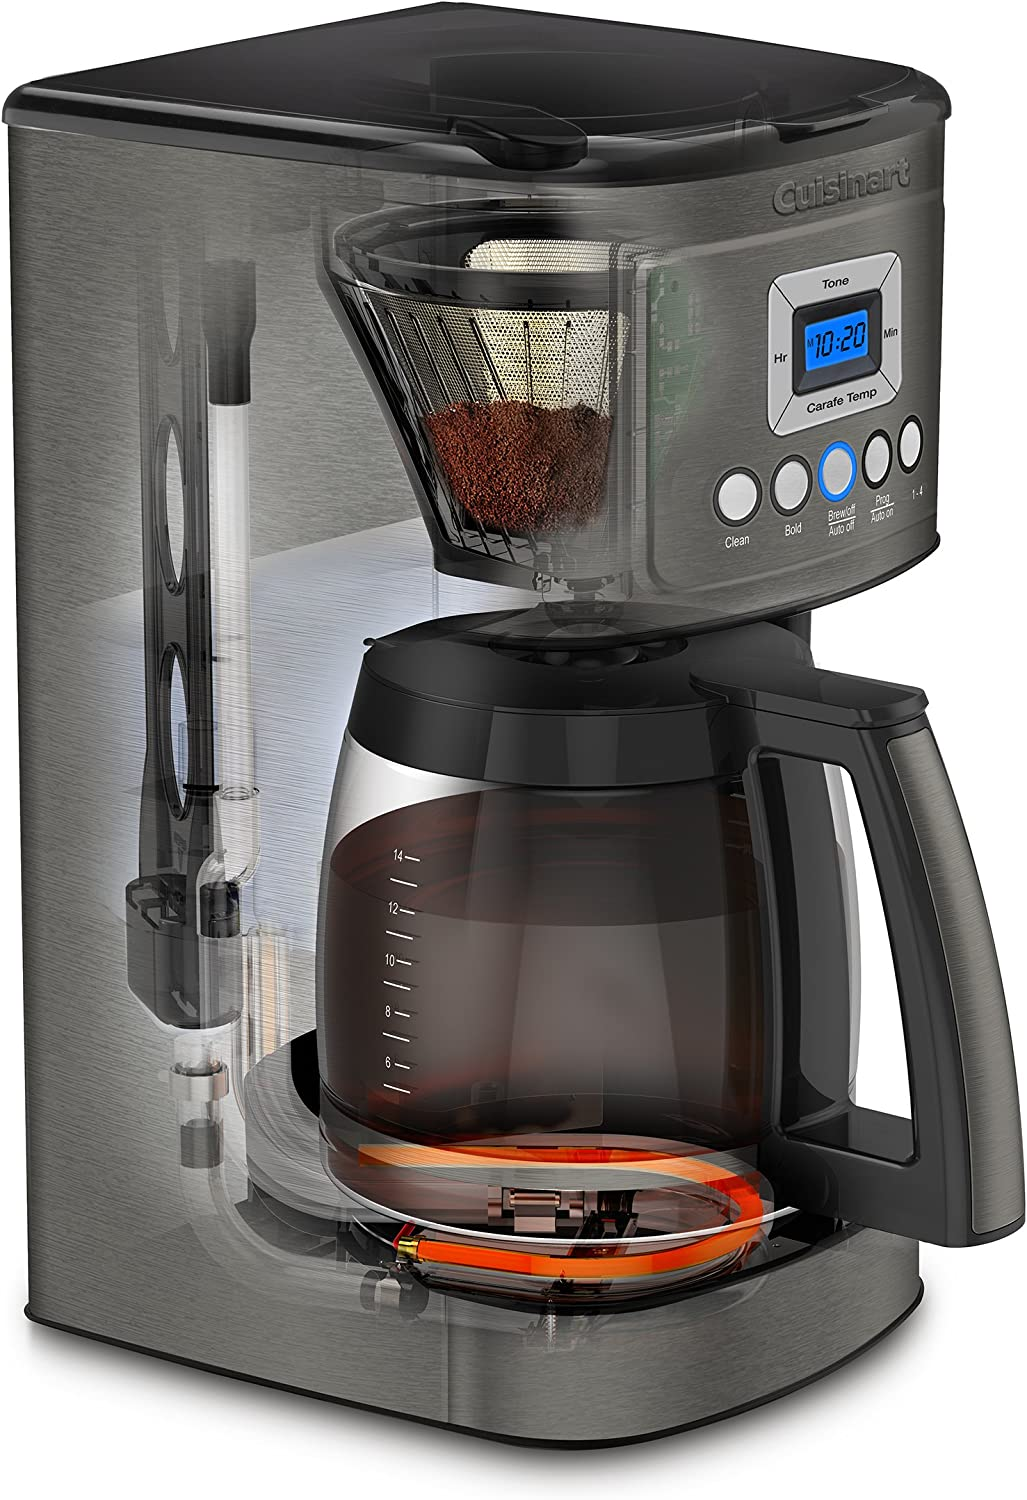 Cuisinart DCC-3200BKSP1 Perfectemp Coffee Maker, 14 Cup Progammable with Glass Carafe, Black Stainless Steel